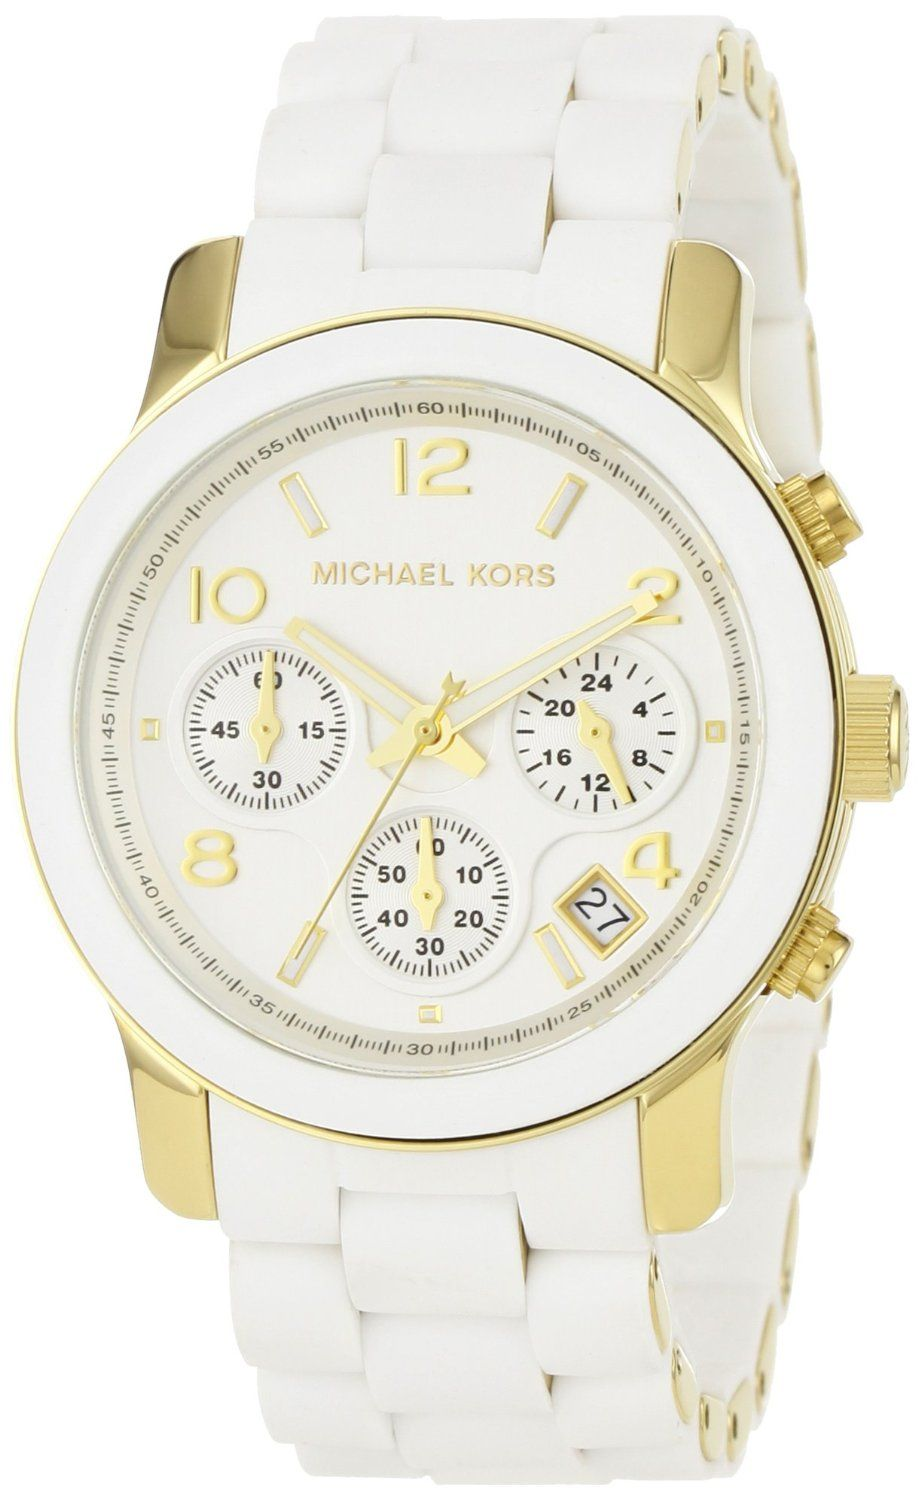 MK watches = need!